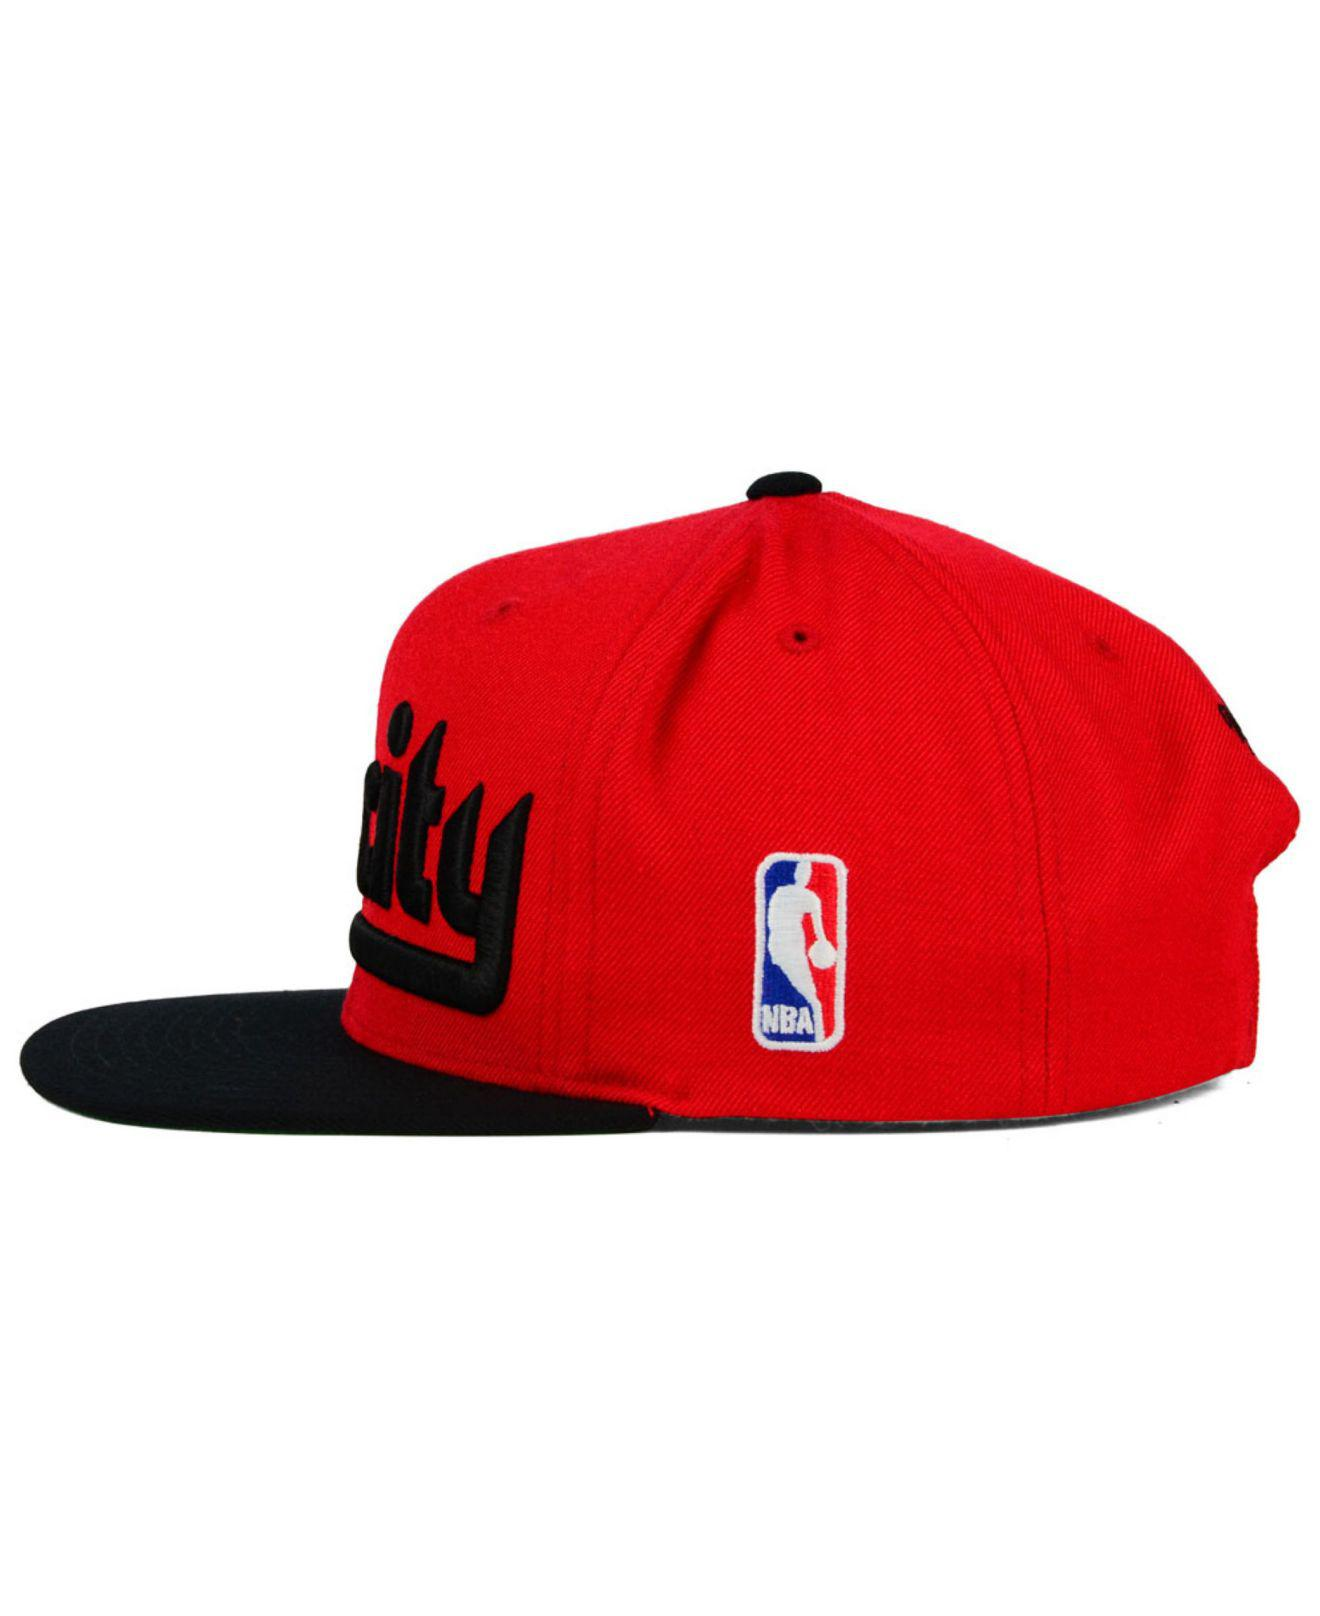 quality design 02f00 a8782 Mitchell   Ness - Red Nba Xl Logo Snapback Cap for Men - Lyst